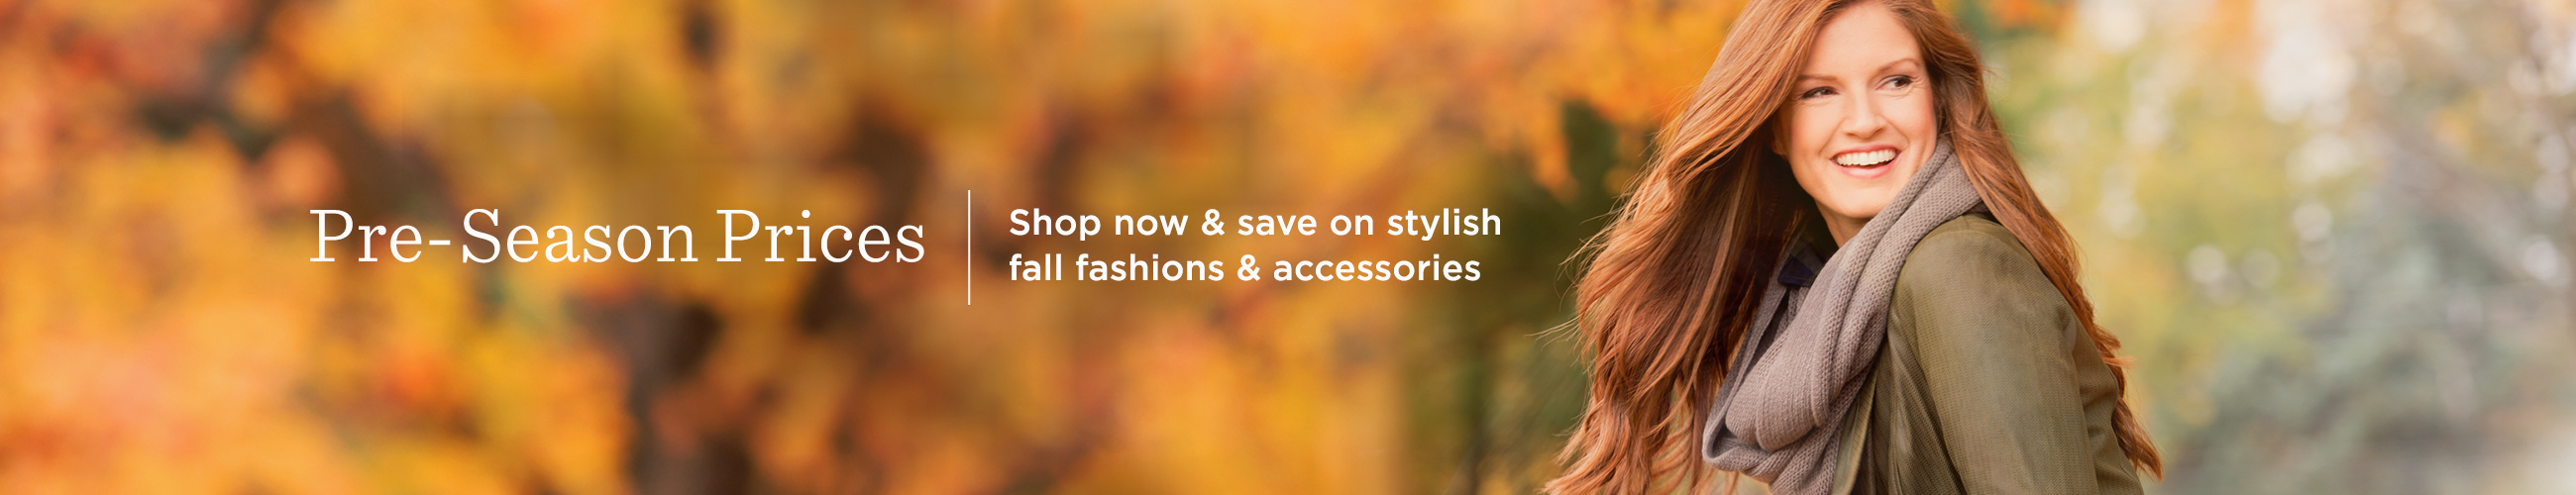 Pre-Season Prices. Shop now & save on stylish fall fashions & accessories